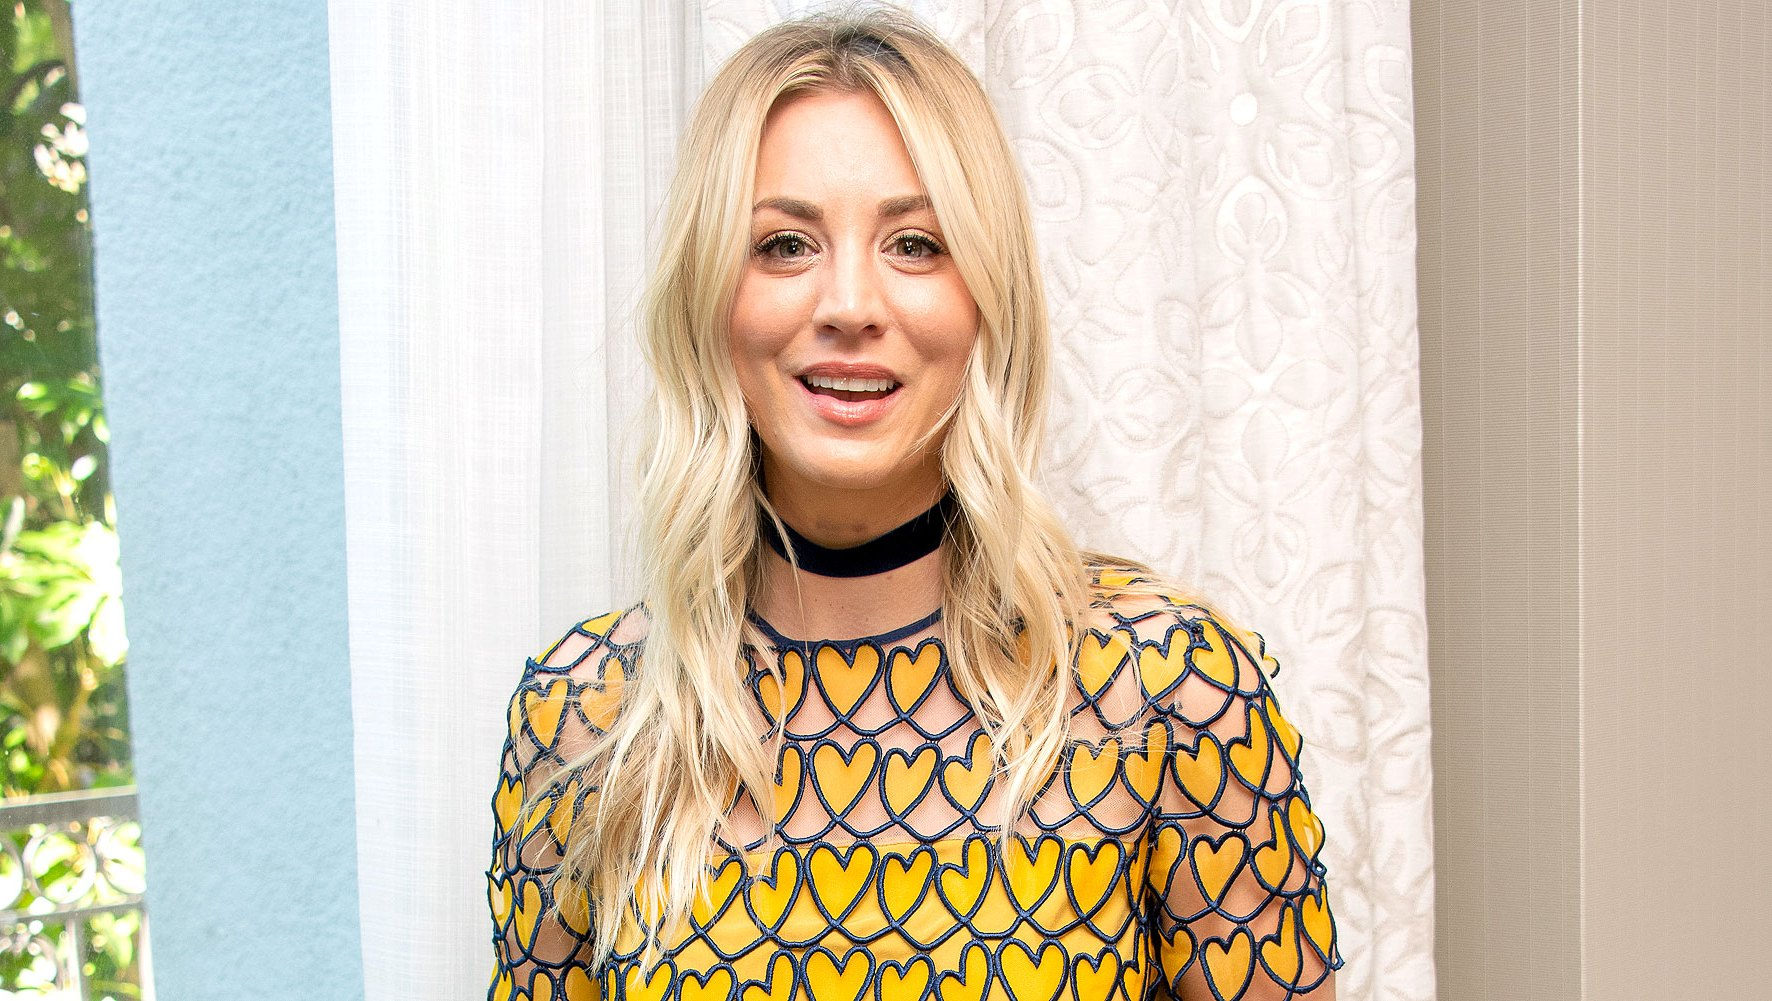 Kaley Cuoco Bunny and Dog Have a Super Sweet Playdate